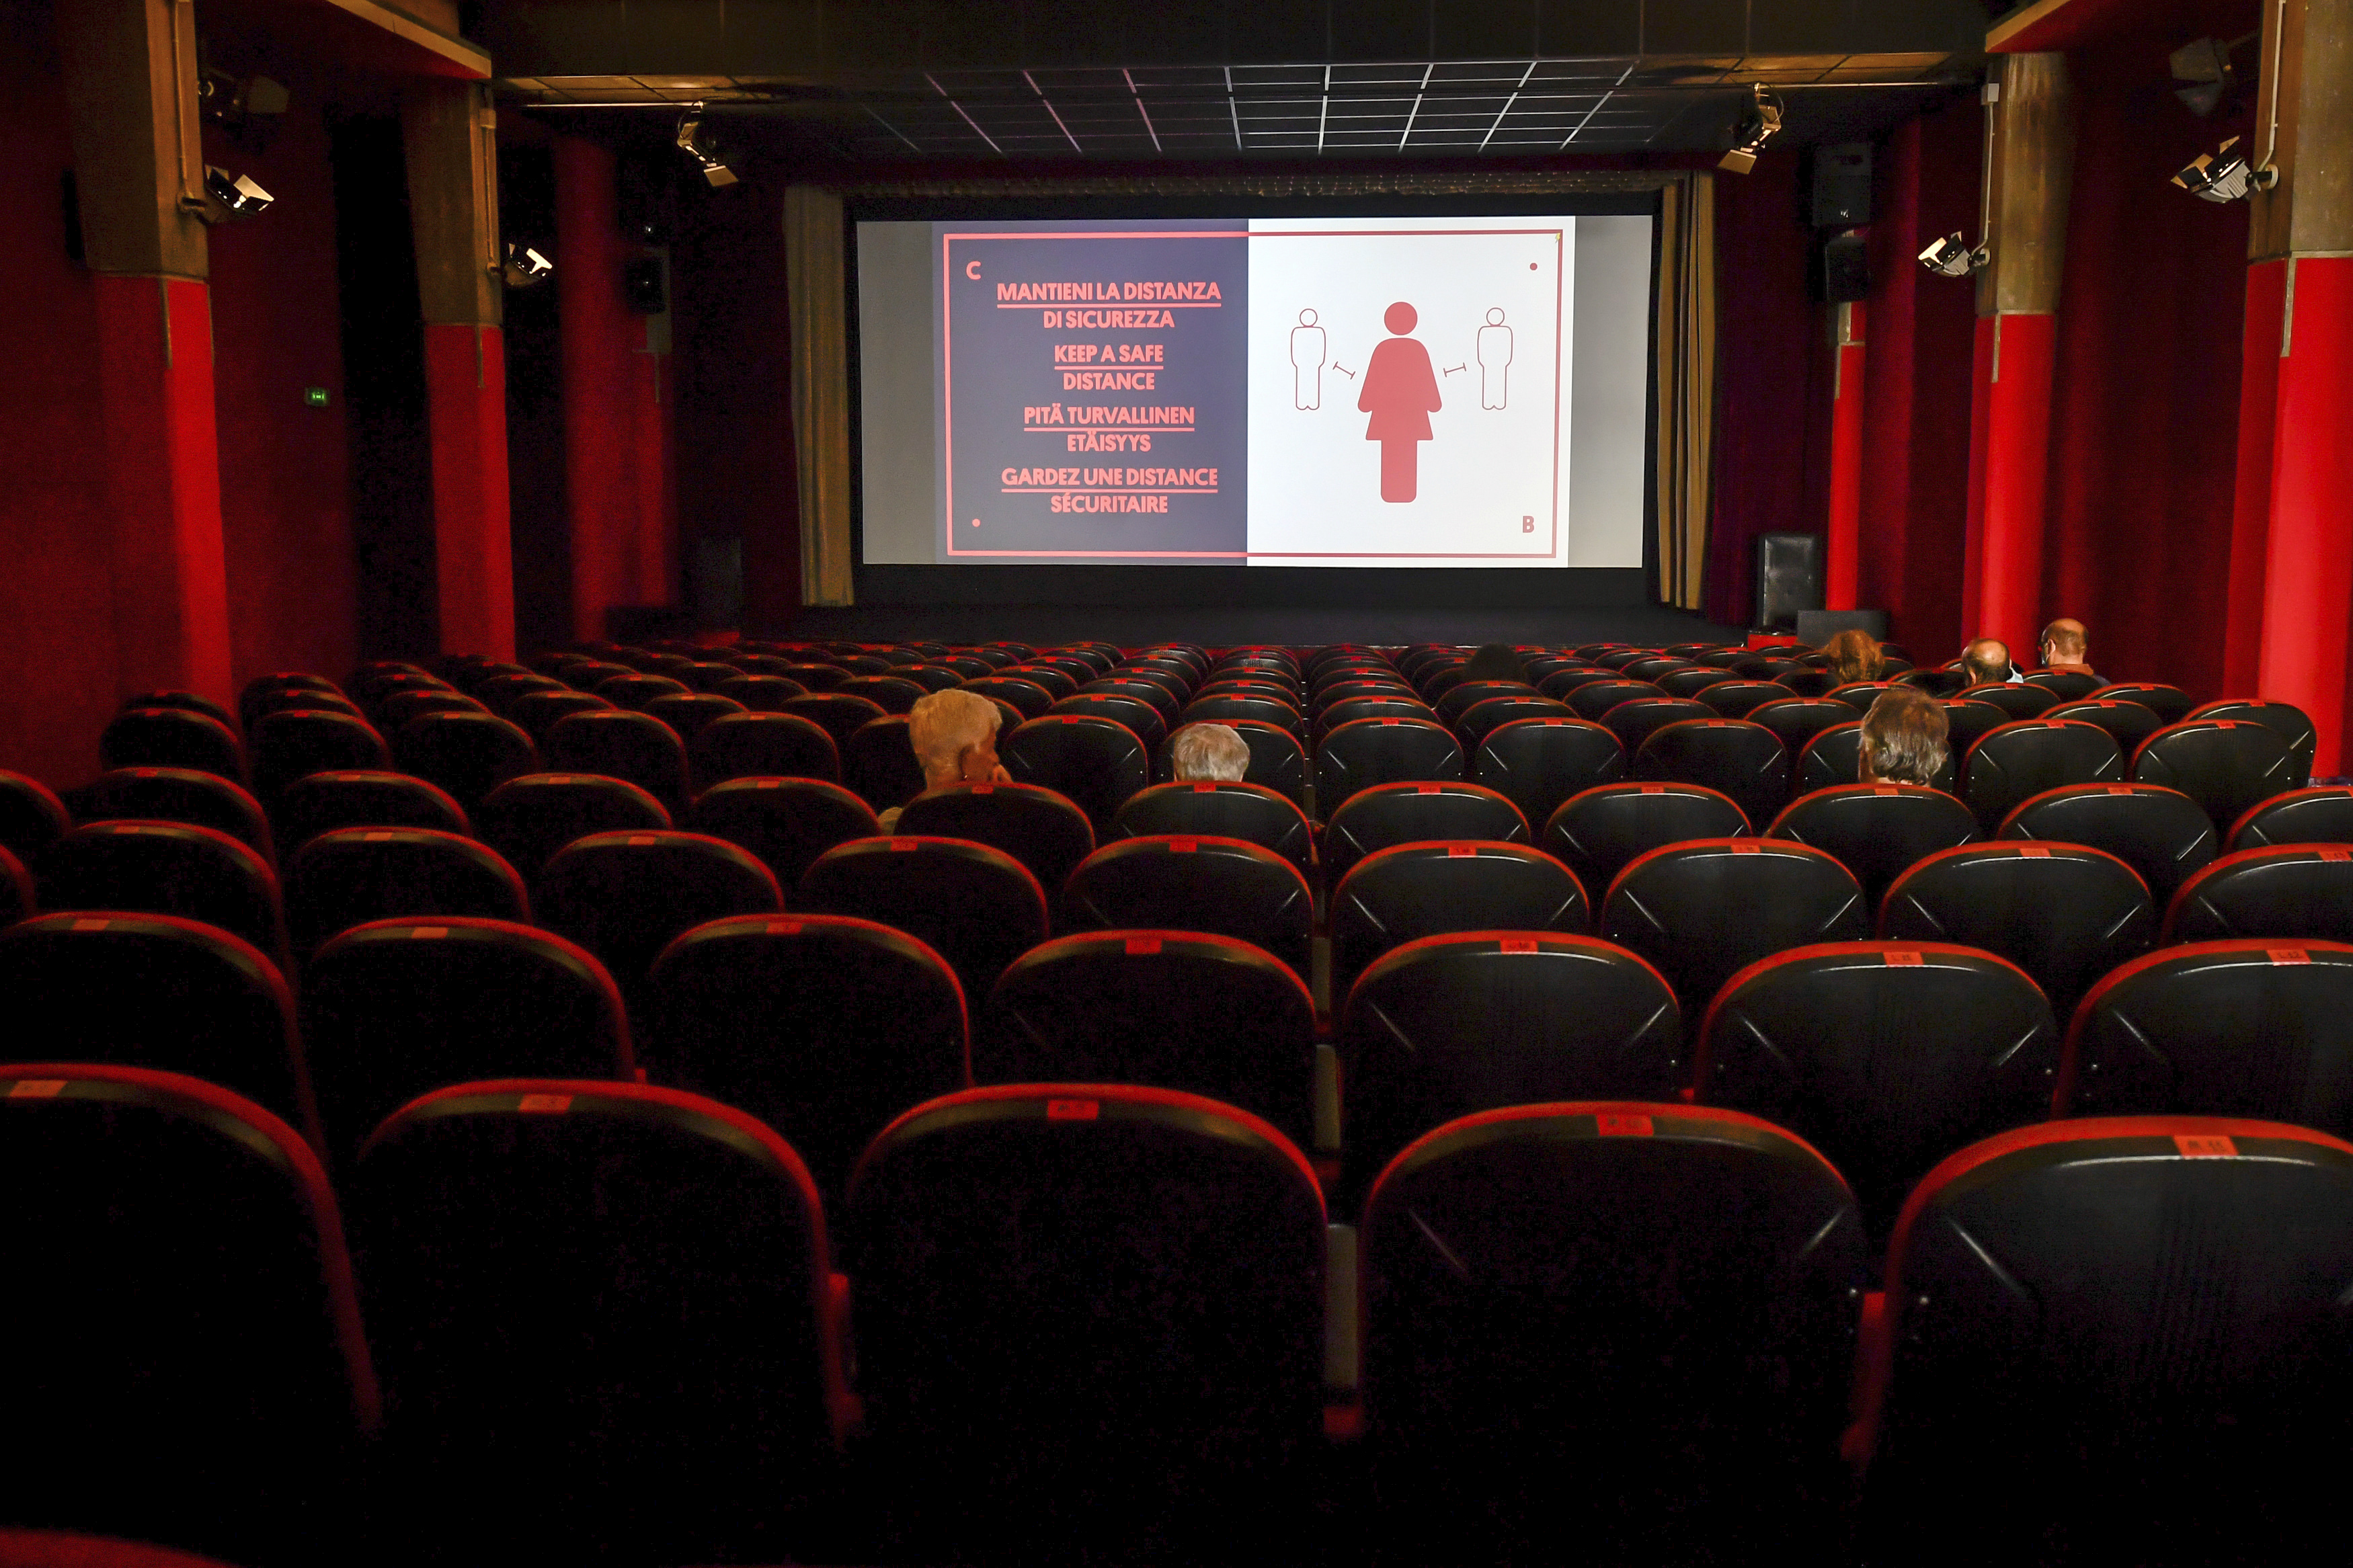 Italy Re-Closing Cinemas Amid Coronavirus Surge; Spain Approves New State Of Alarm, Sets Curfews